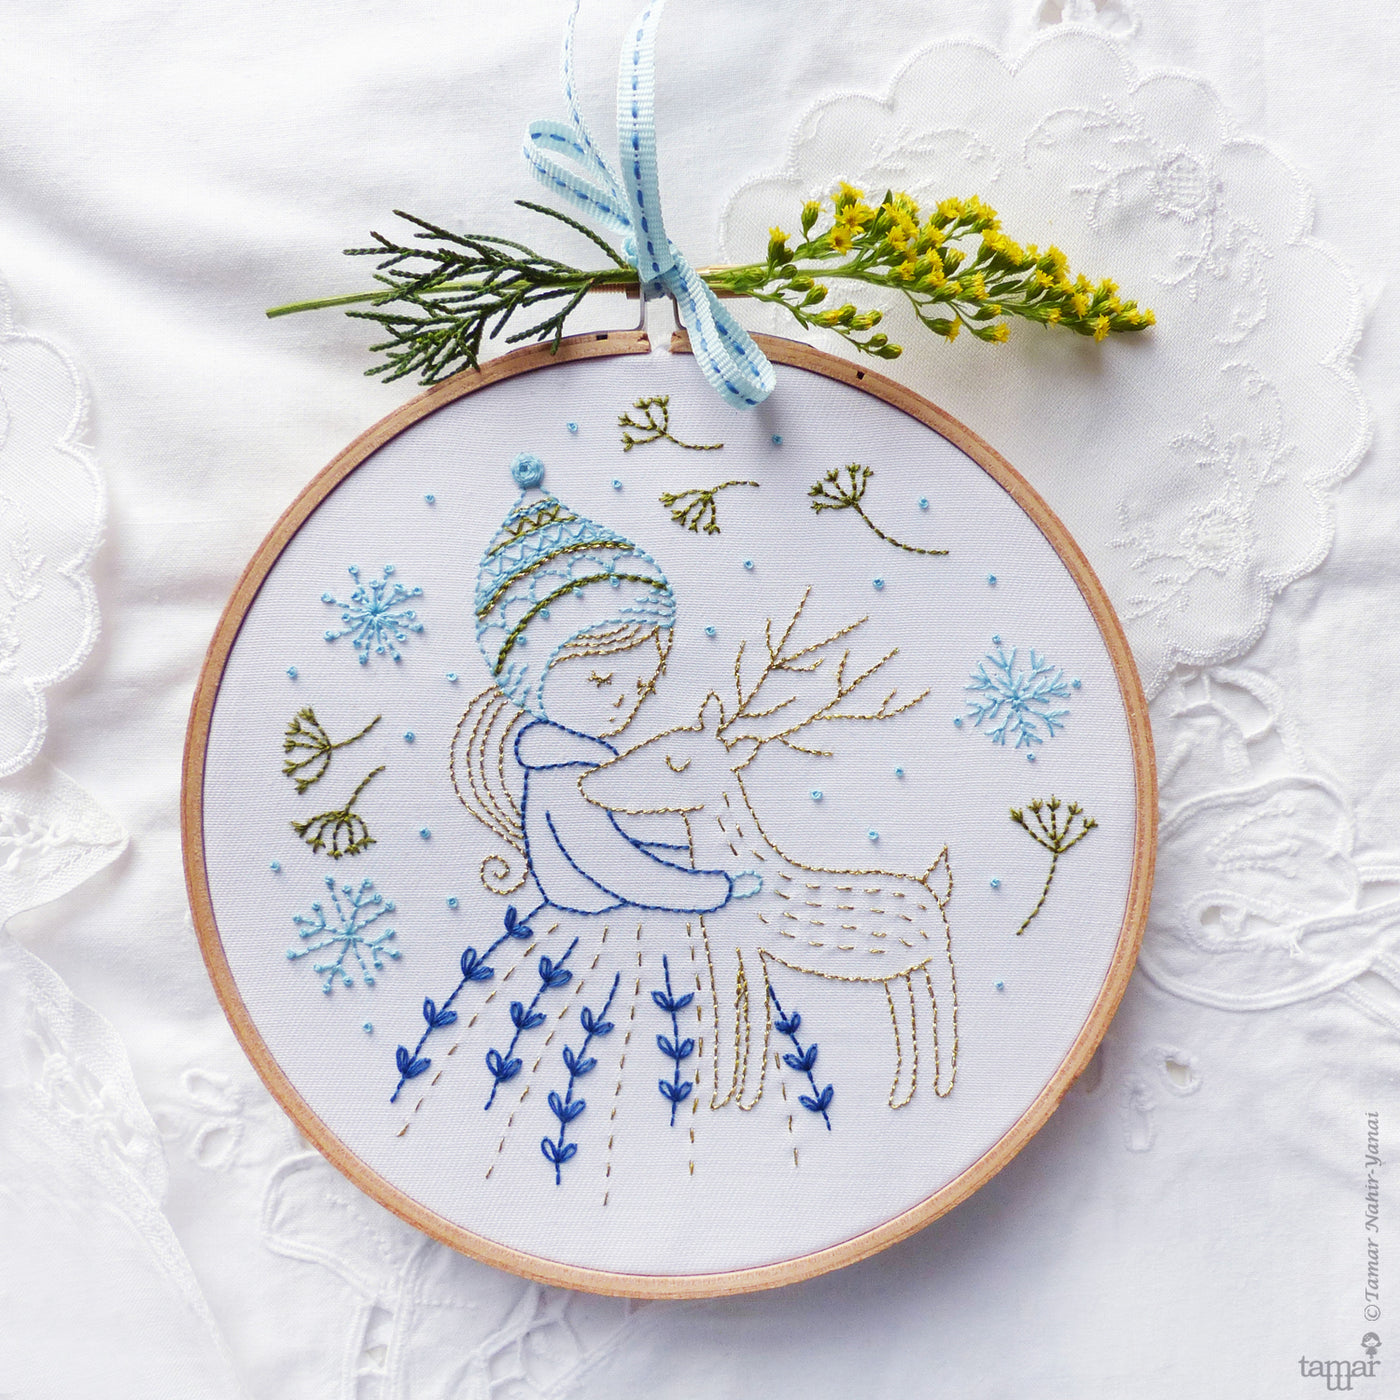 "Golden Deer 6"" Embroidery Kit"